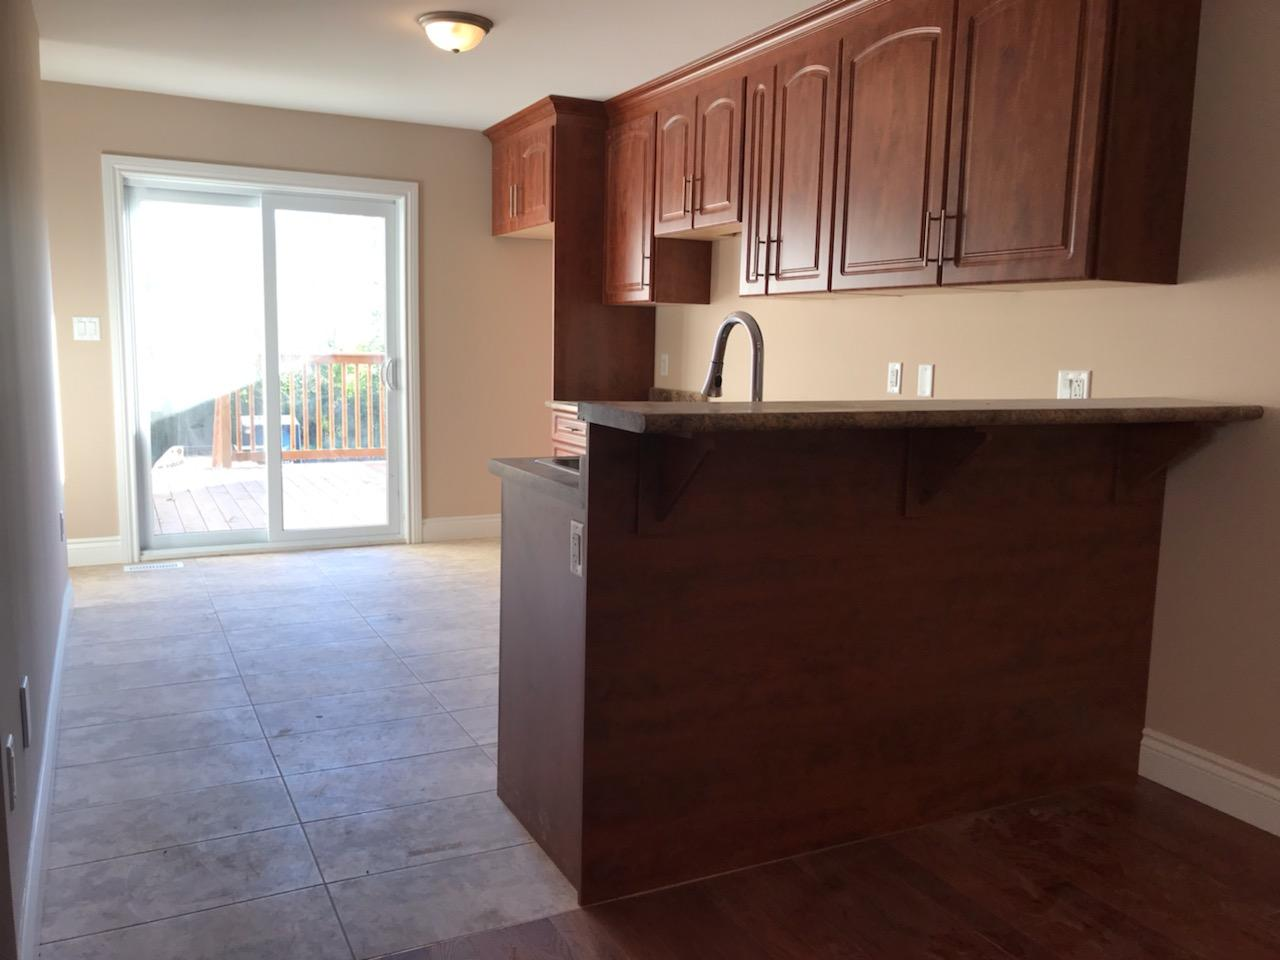 BRAND NEW UNITS WITH 2 BEDROOMS IN EAST WINDSOR